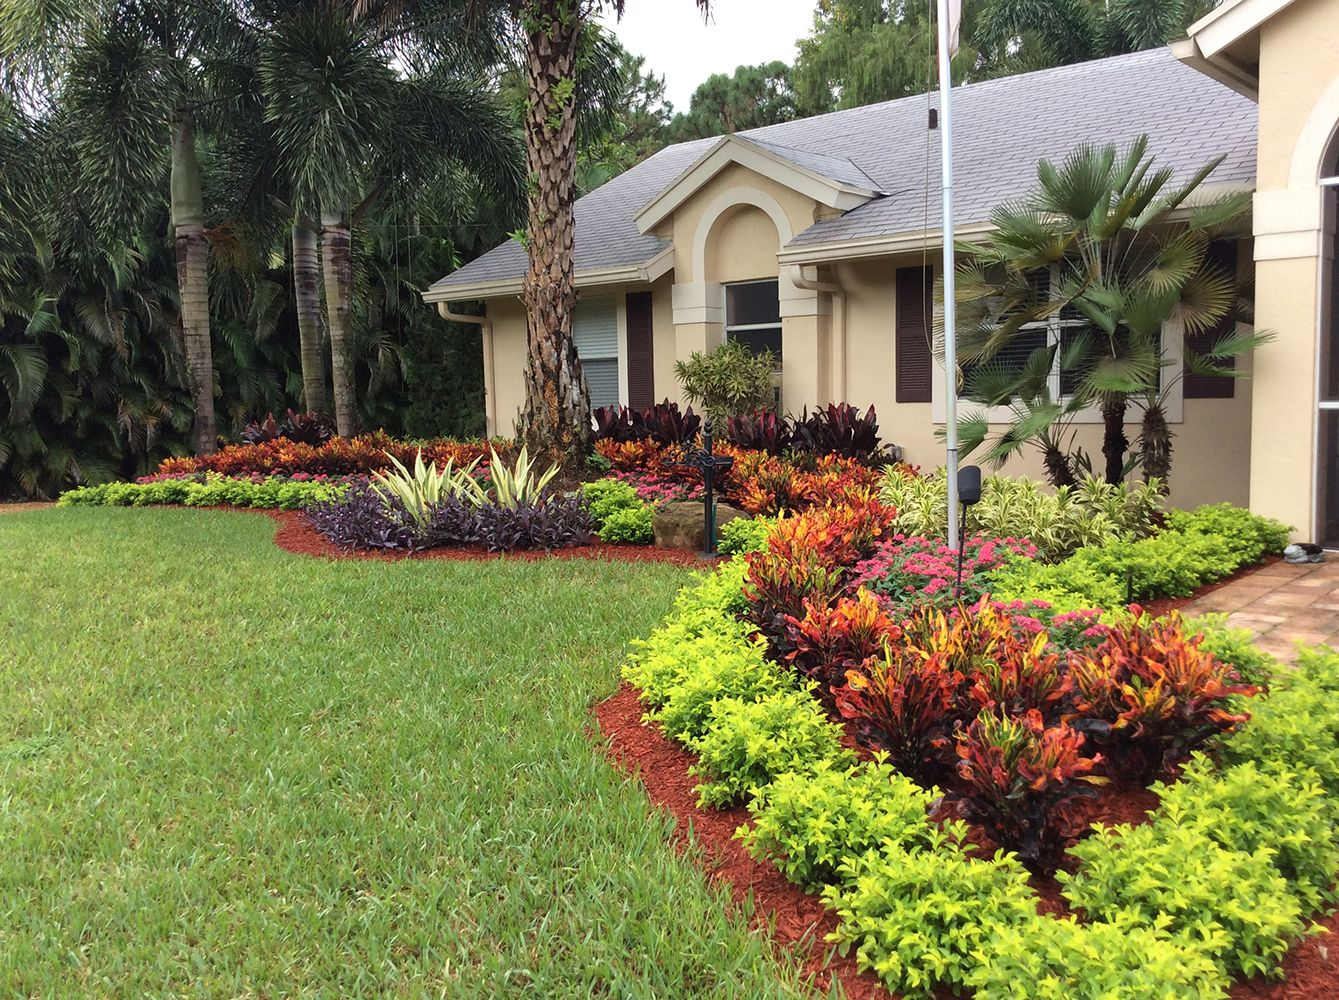 landscape on a budget florida | Front Yard Curb Appeal Landscaping Ideas  Pictures Designs Photos ... | Beautiful Garden Ideas! | Pinterest | Picture  design ... - Landscape On A Budget Florida Front Yard Curb Appeal Landscaping